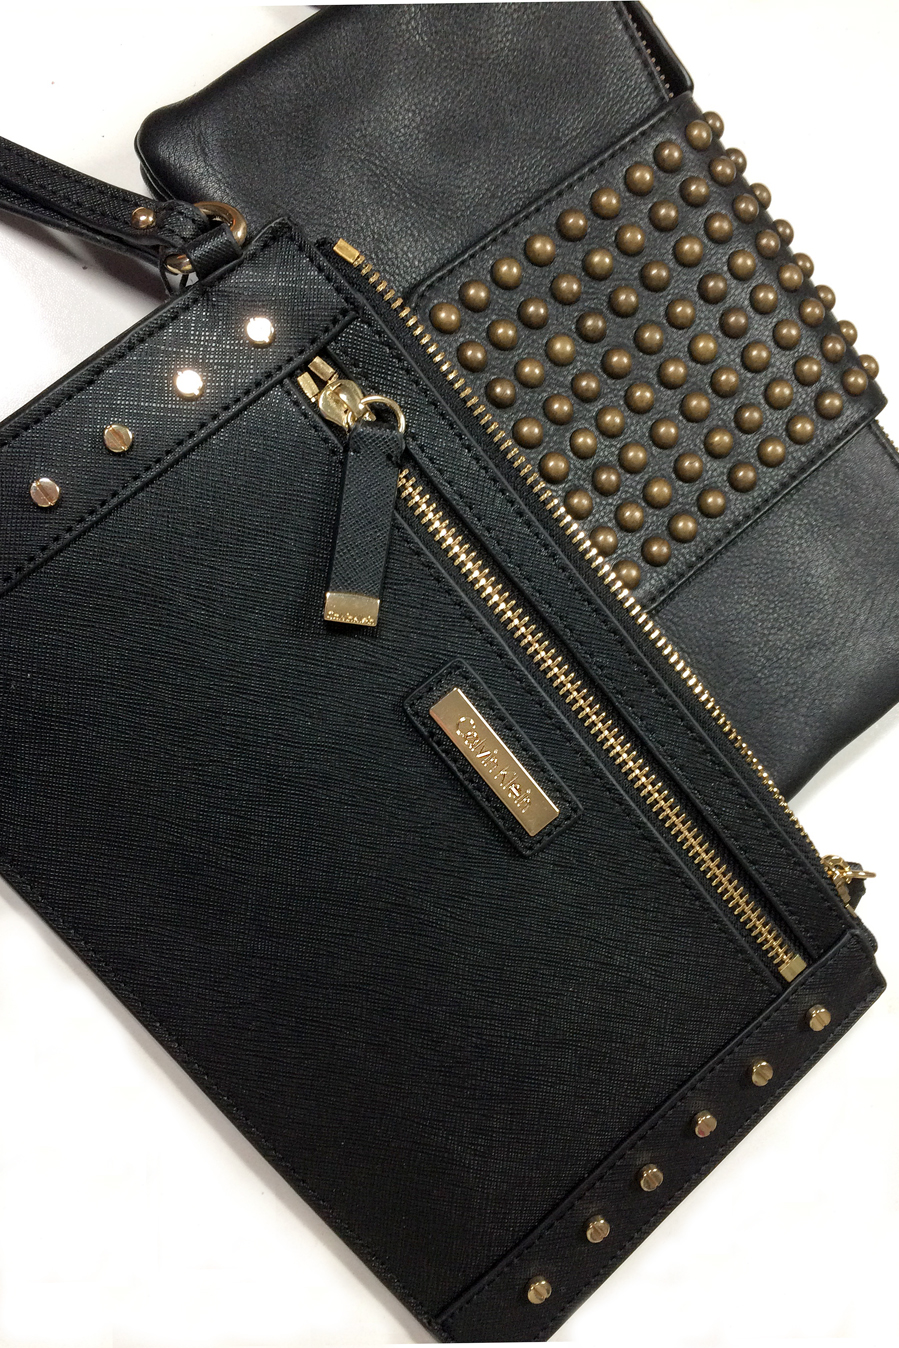 Calvin Klein, True Religion clutch